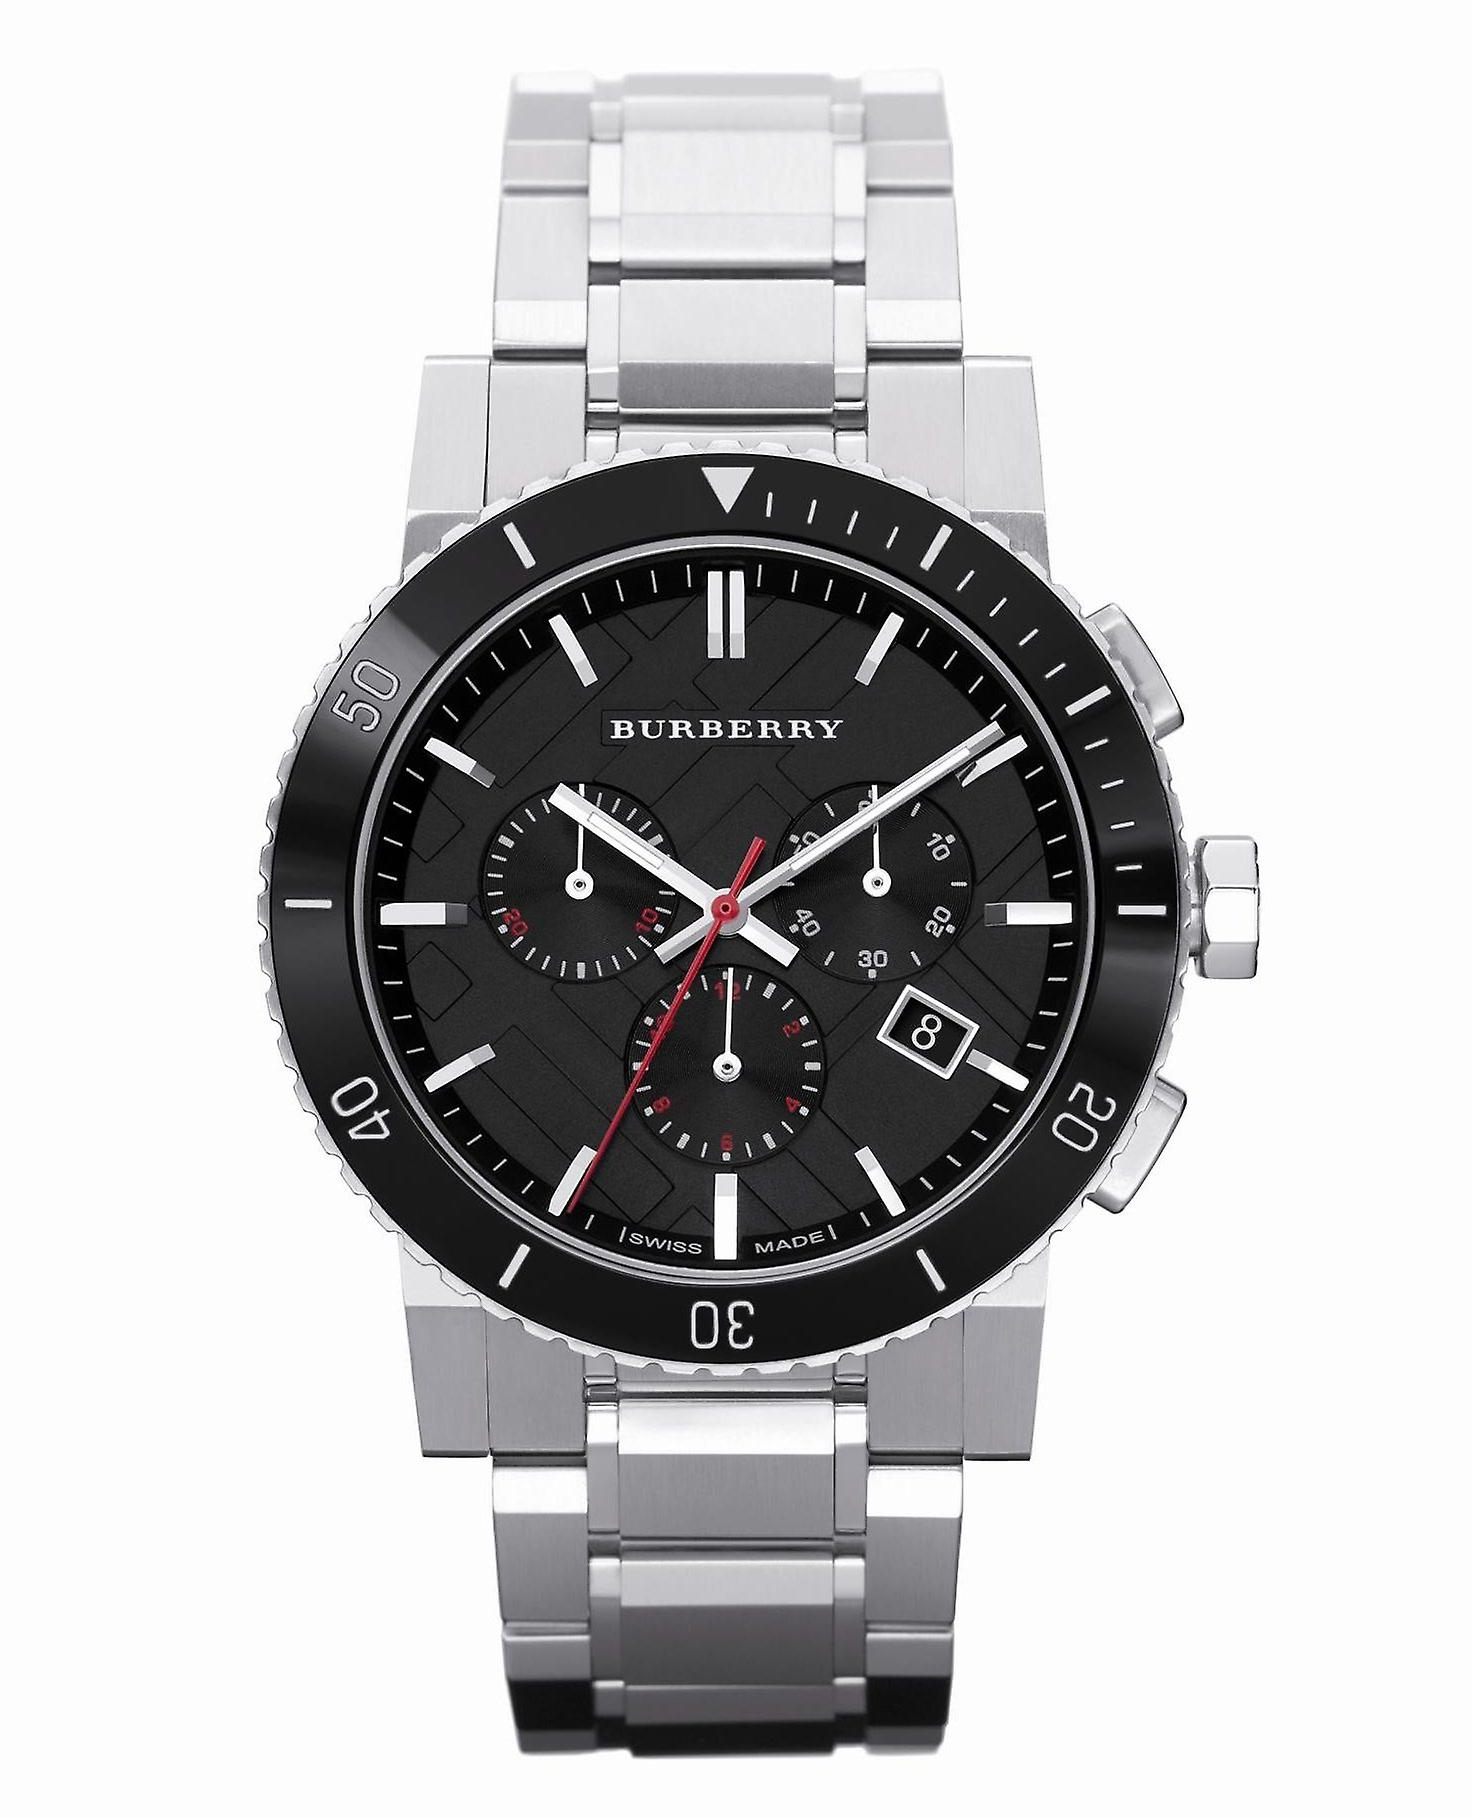 Burberry Bu9380 Black Dial Chronograph Stainless Steel Men's Watch